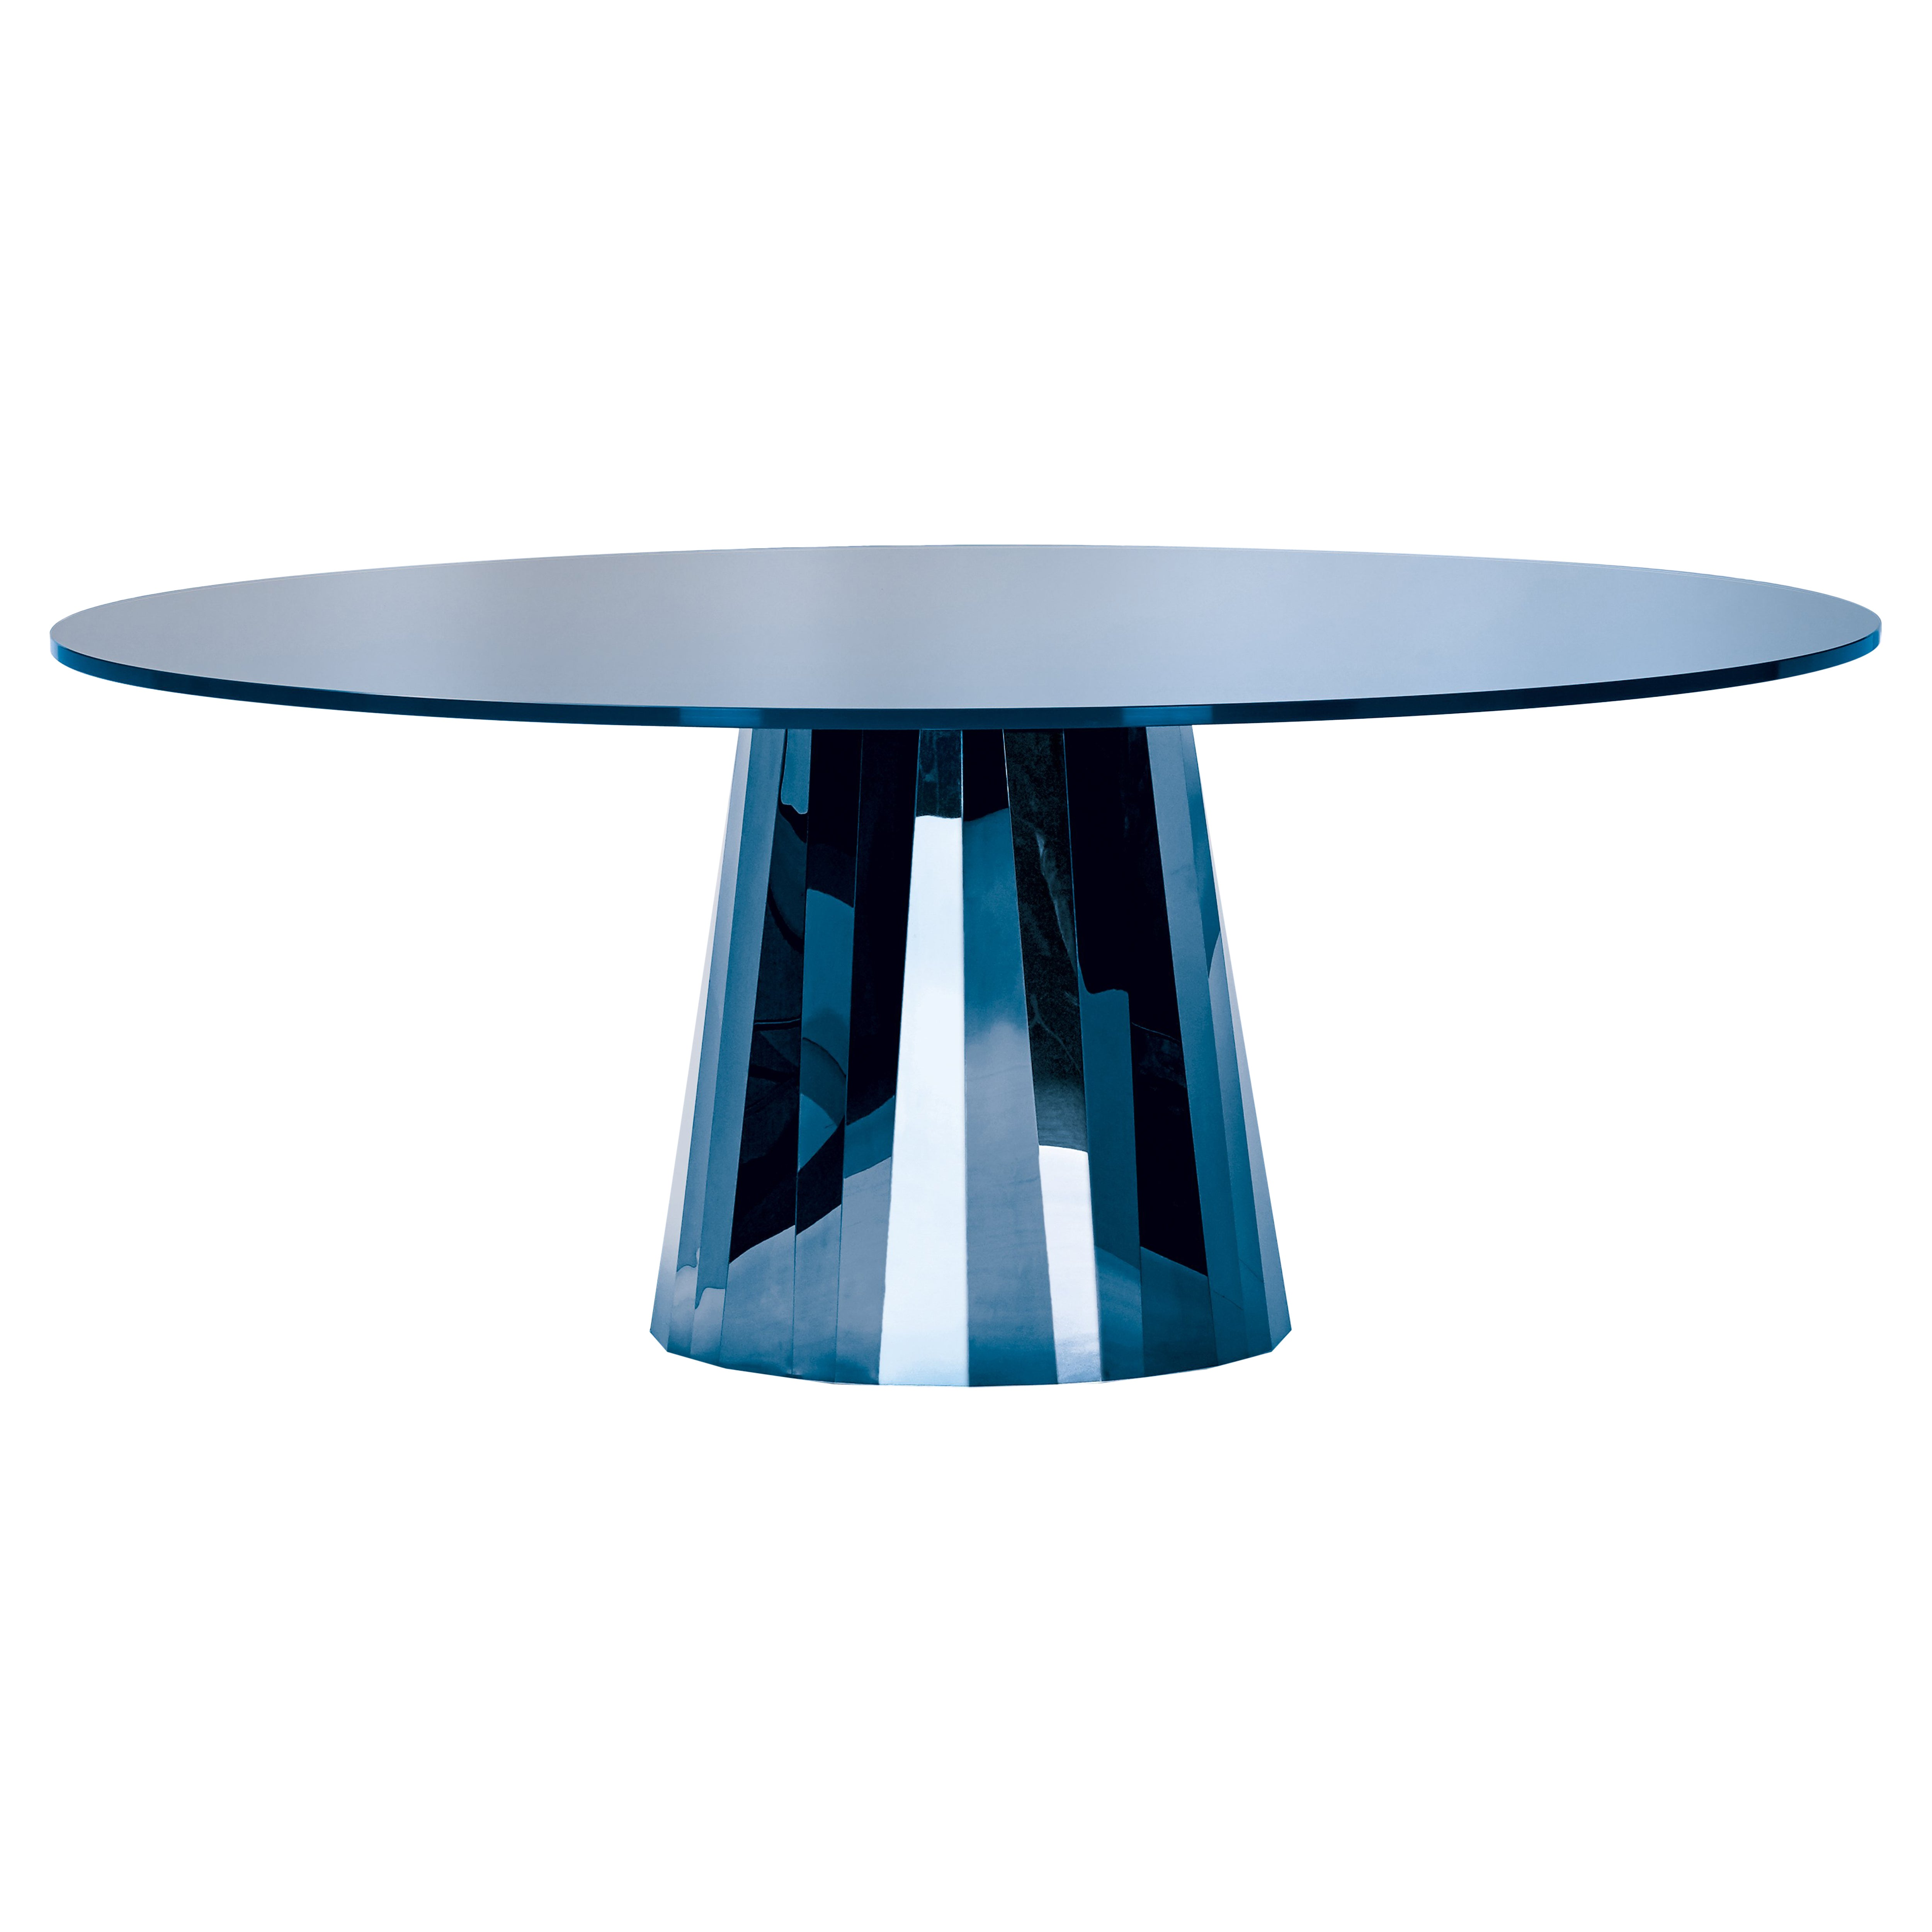 ClassiCon Pli Table in Blue with Lacquer Top by Victoria Wilmotte